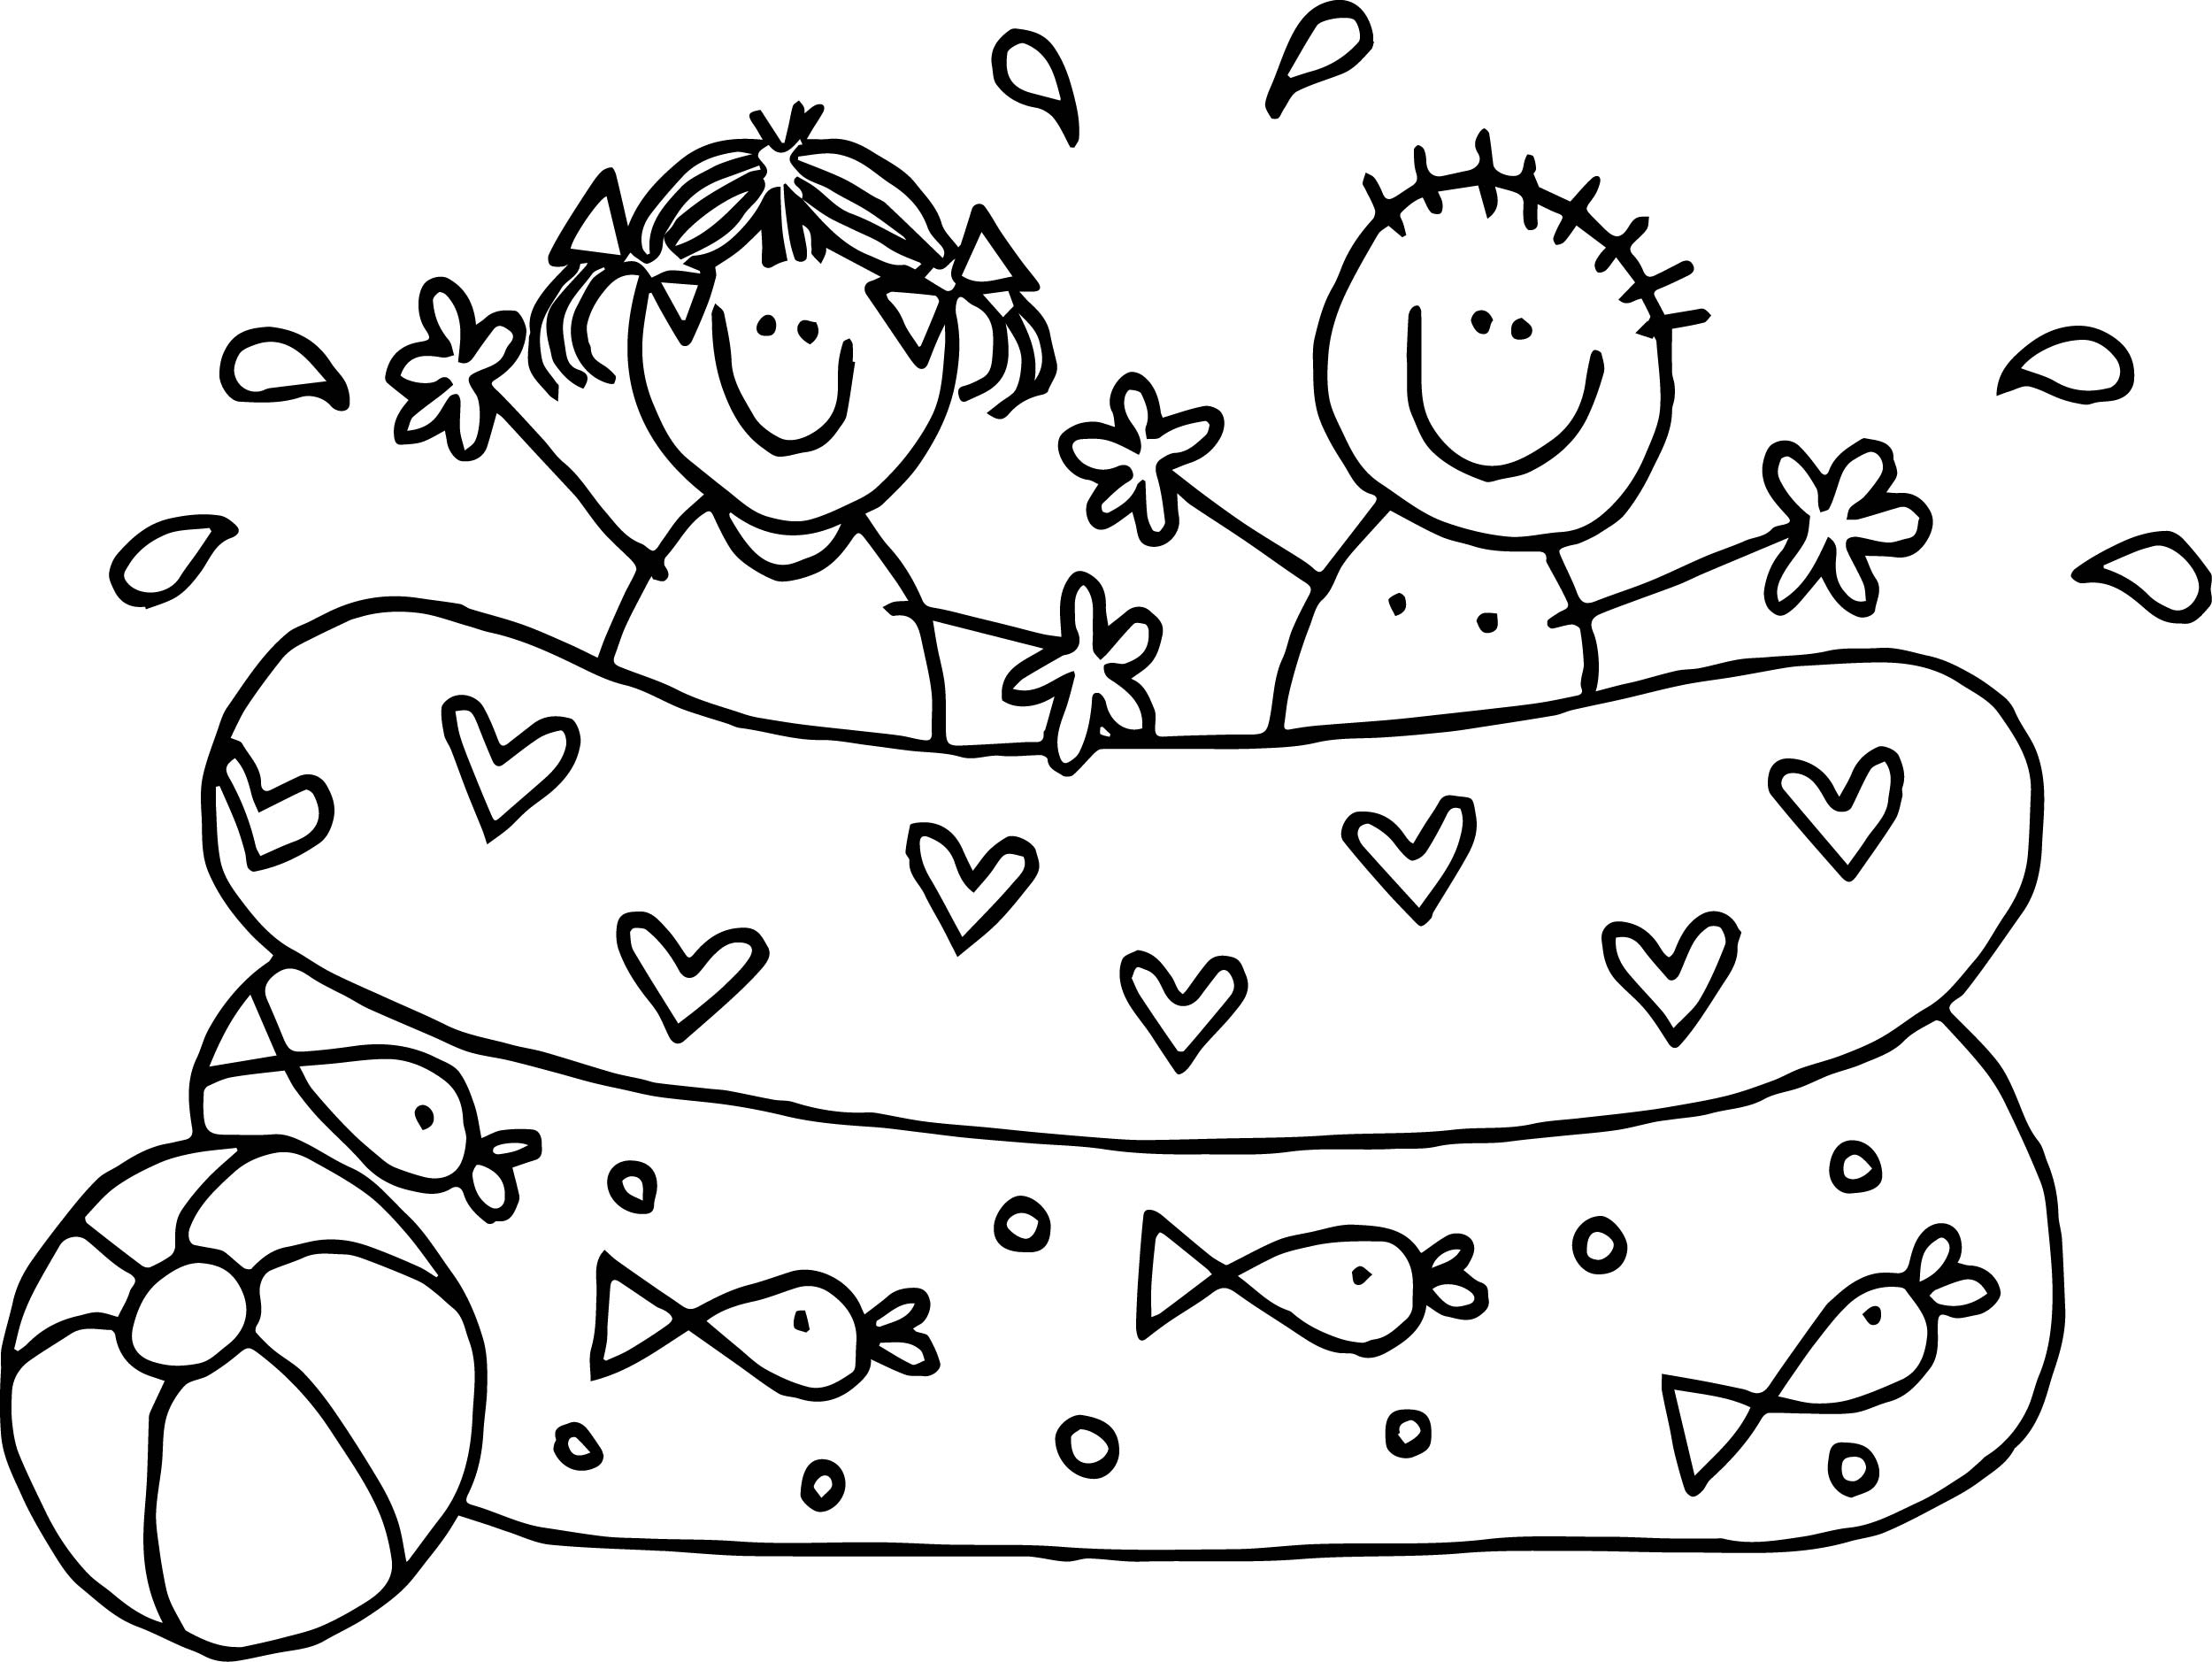 playing kids coloring pages - photo#33